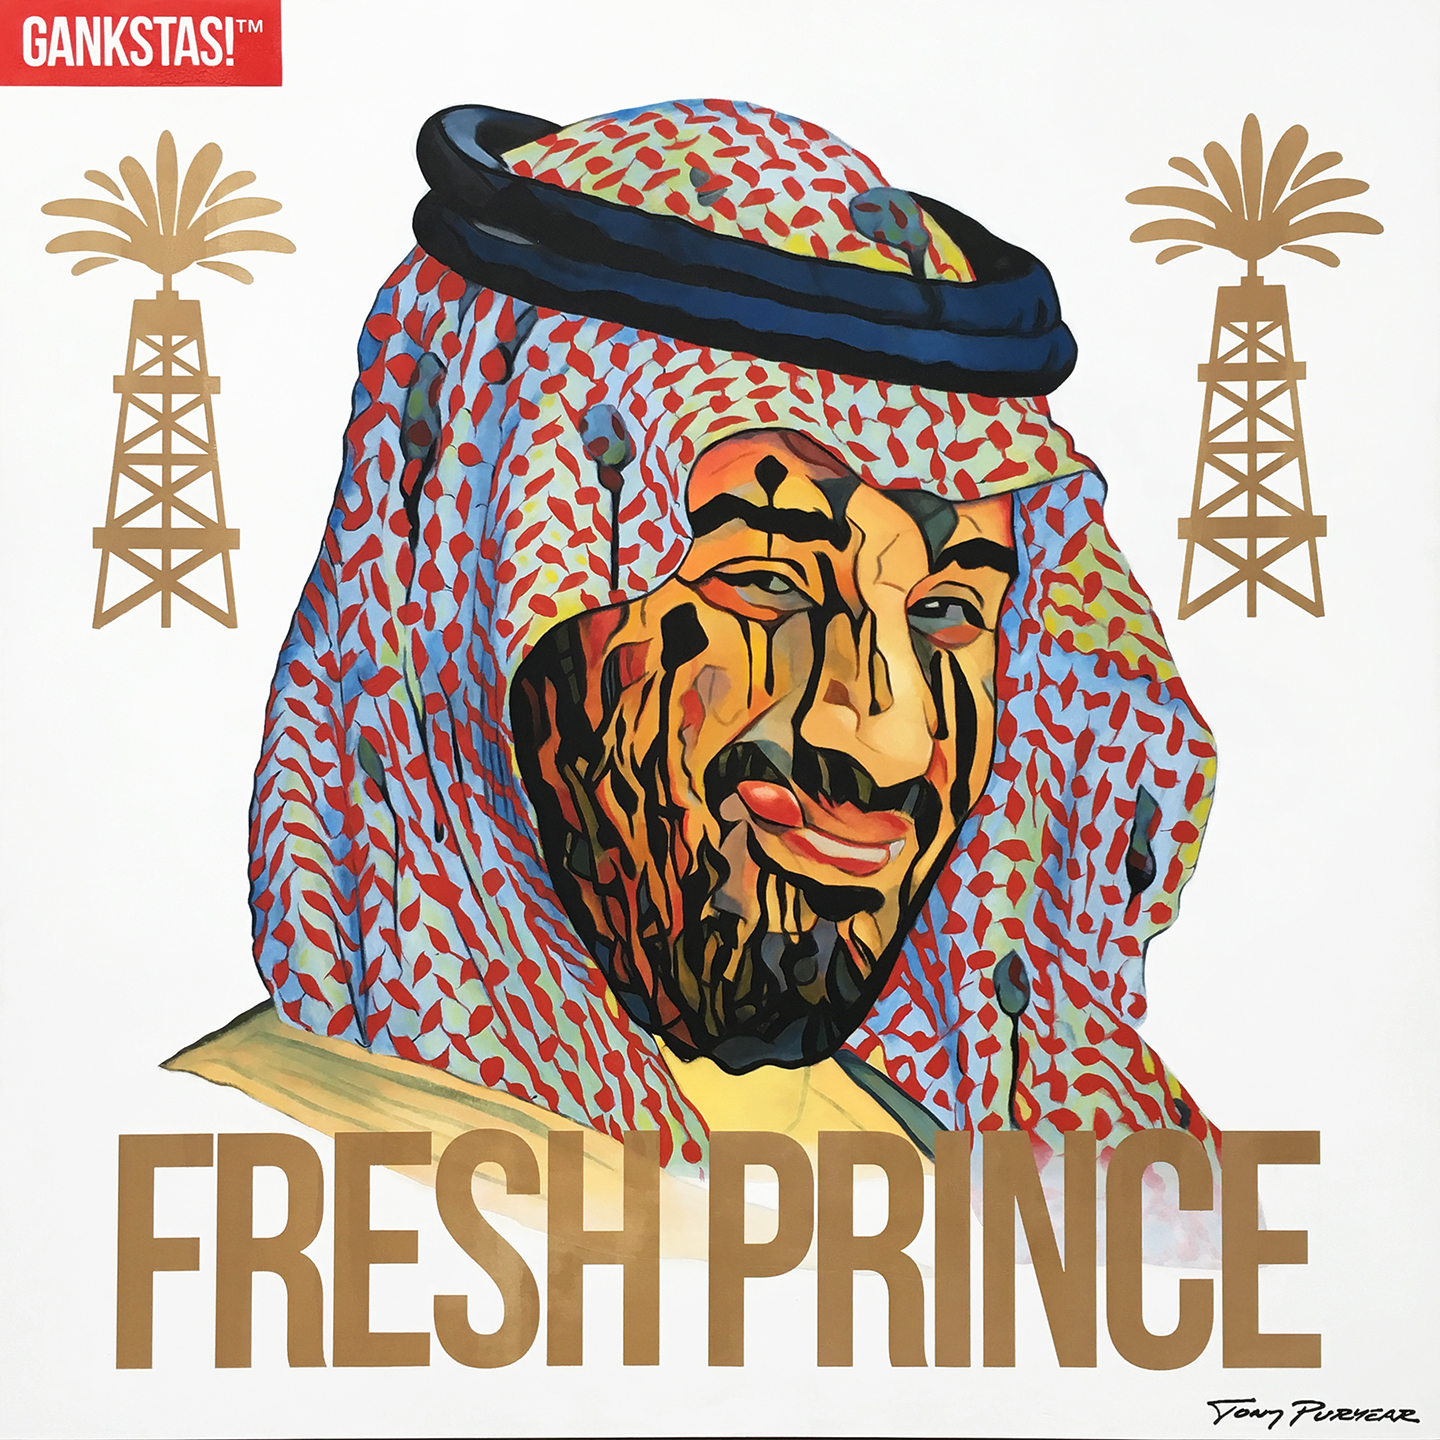 """""""Fresh Prince"""" 2017, oil on board 48""""x48"""" - Part of my gankstas!™ series, this portrait of Saudi Crown Prince Mohammed Bin Salman features his oil wells and his charming """"smile."""""""